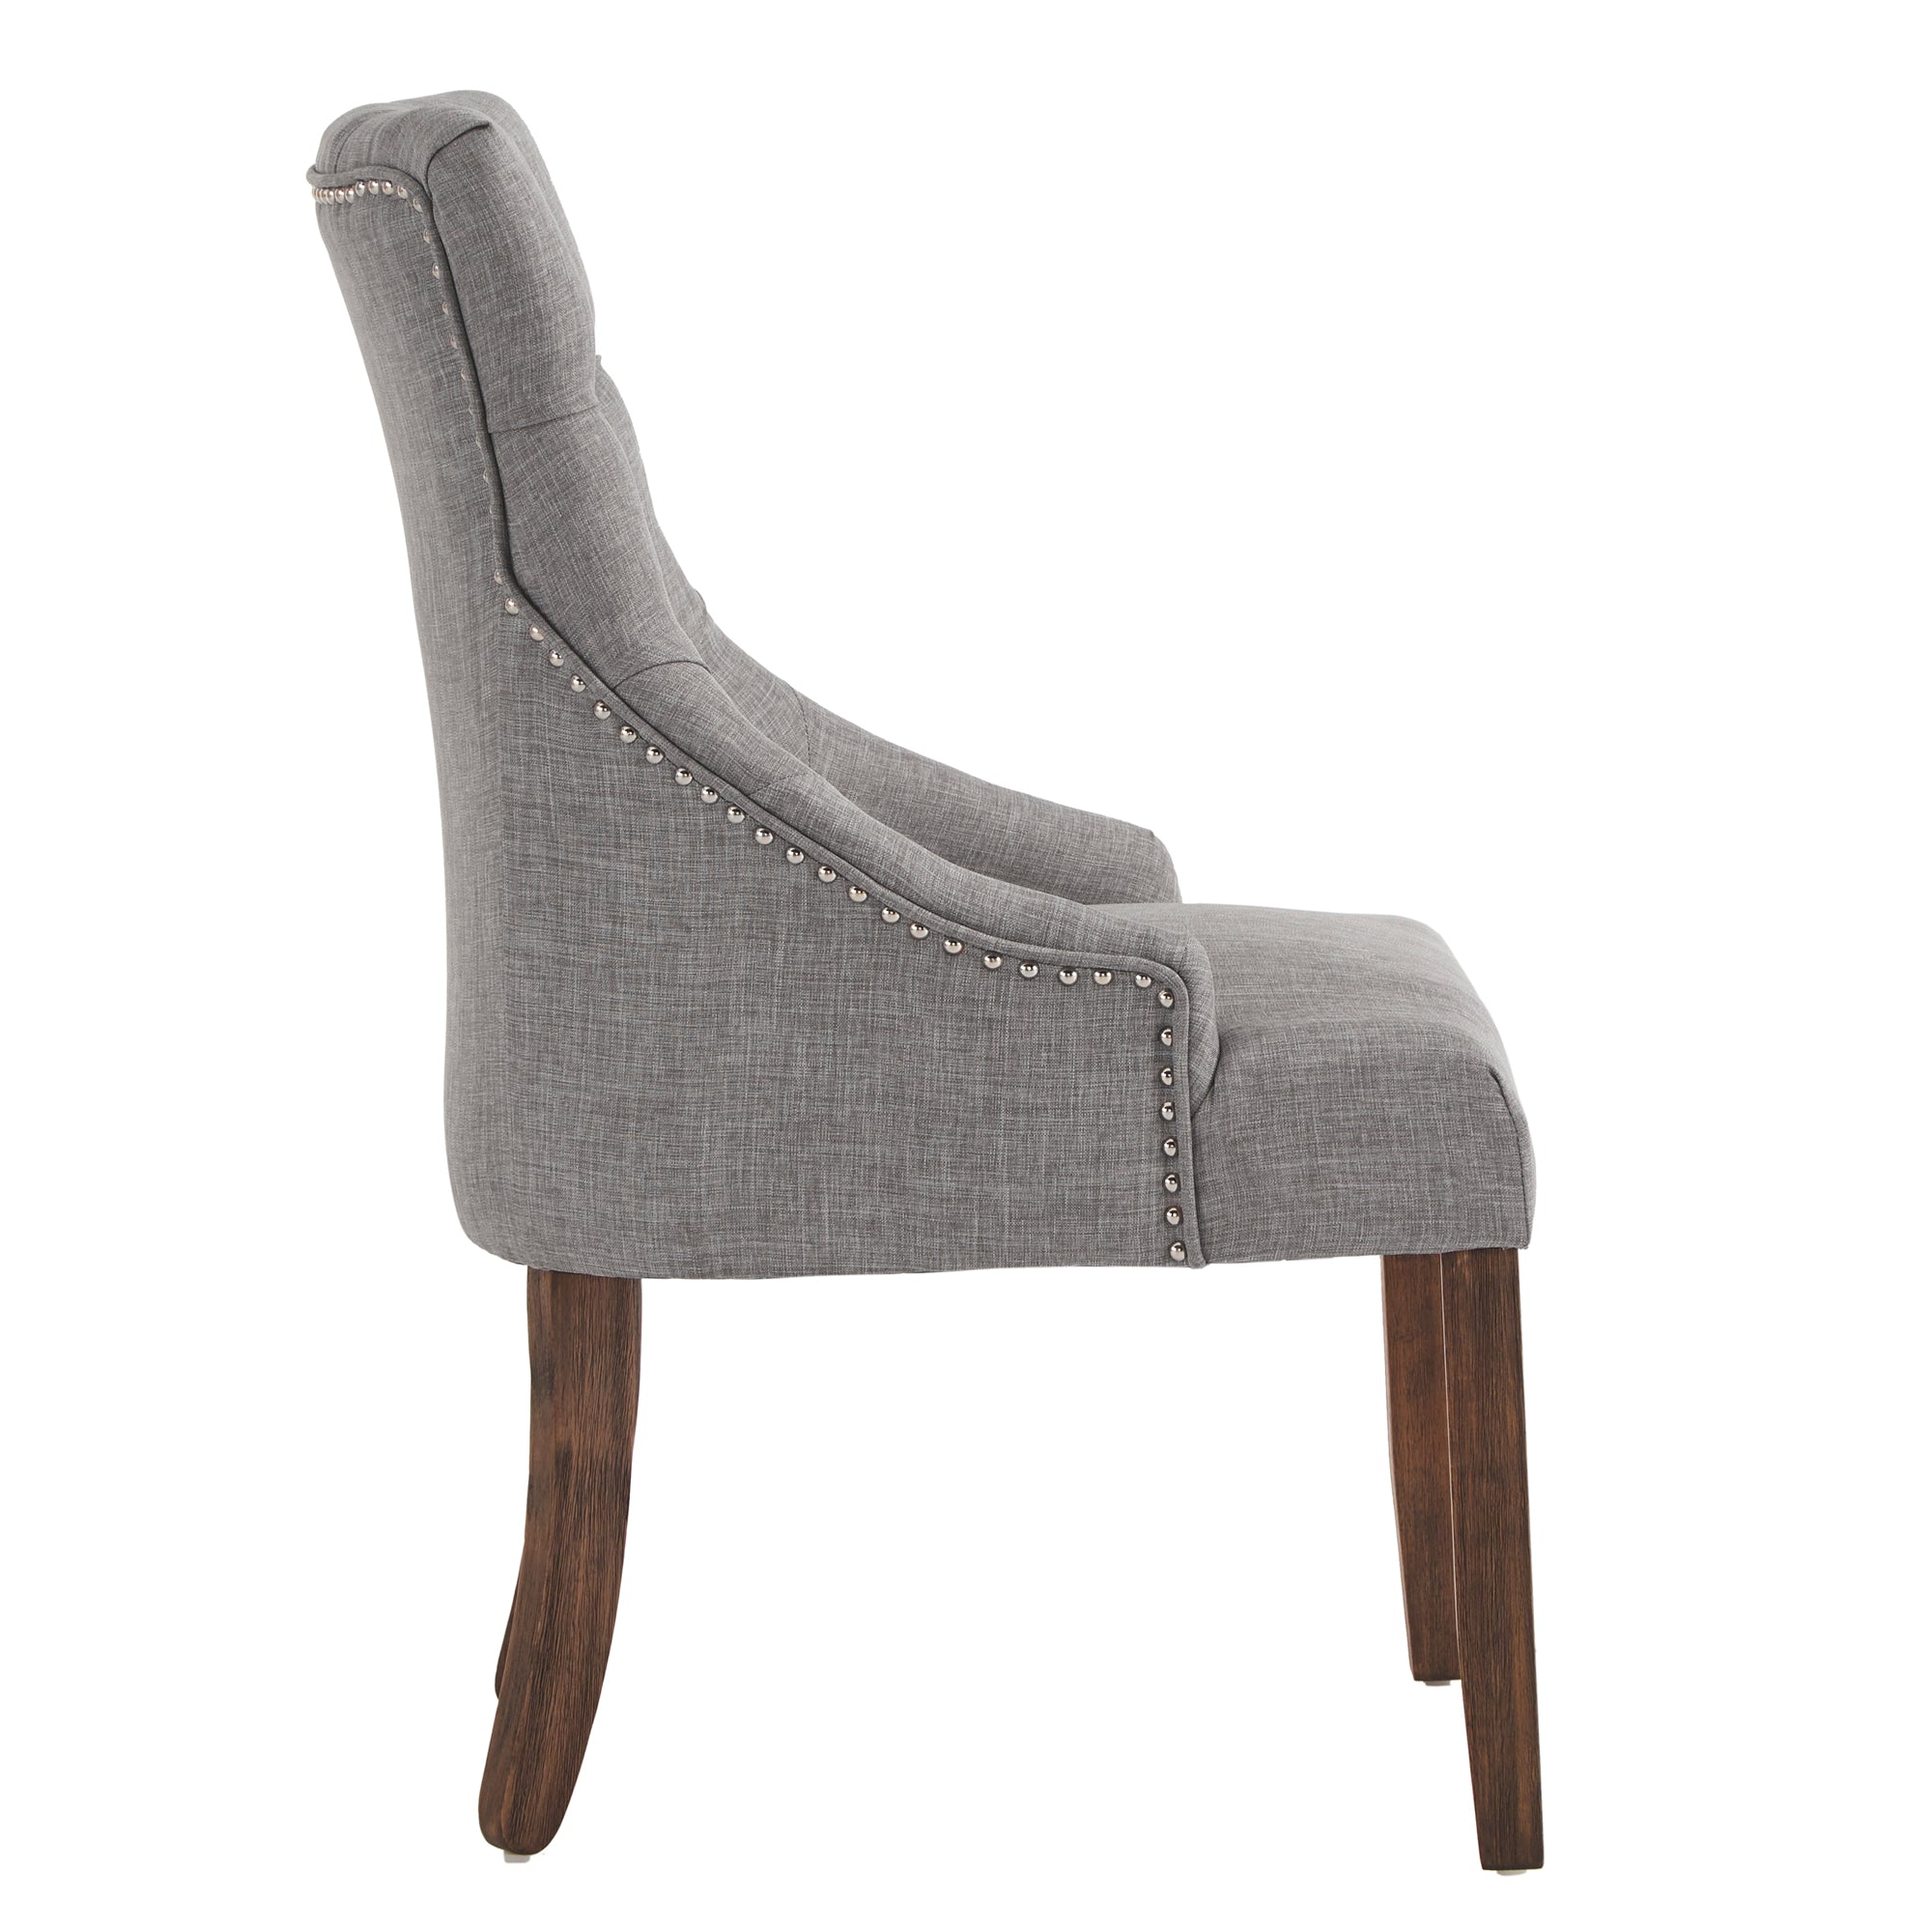 Linen Curved Back Tufted Dining Chair (Set of Two) - Grey Linen